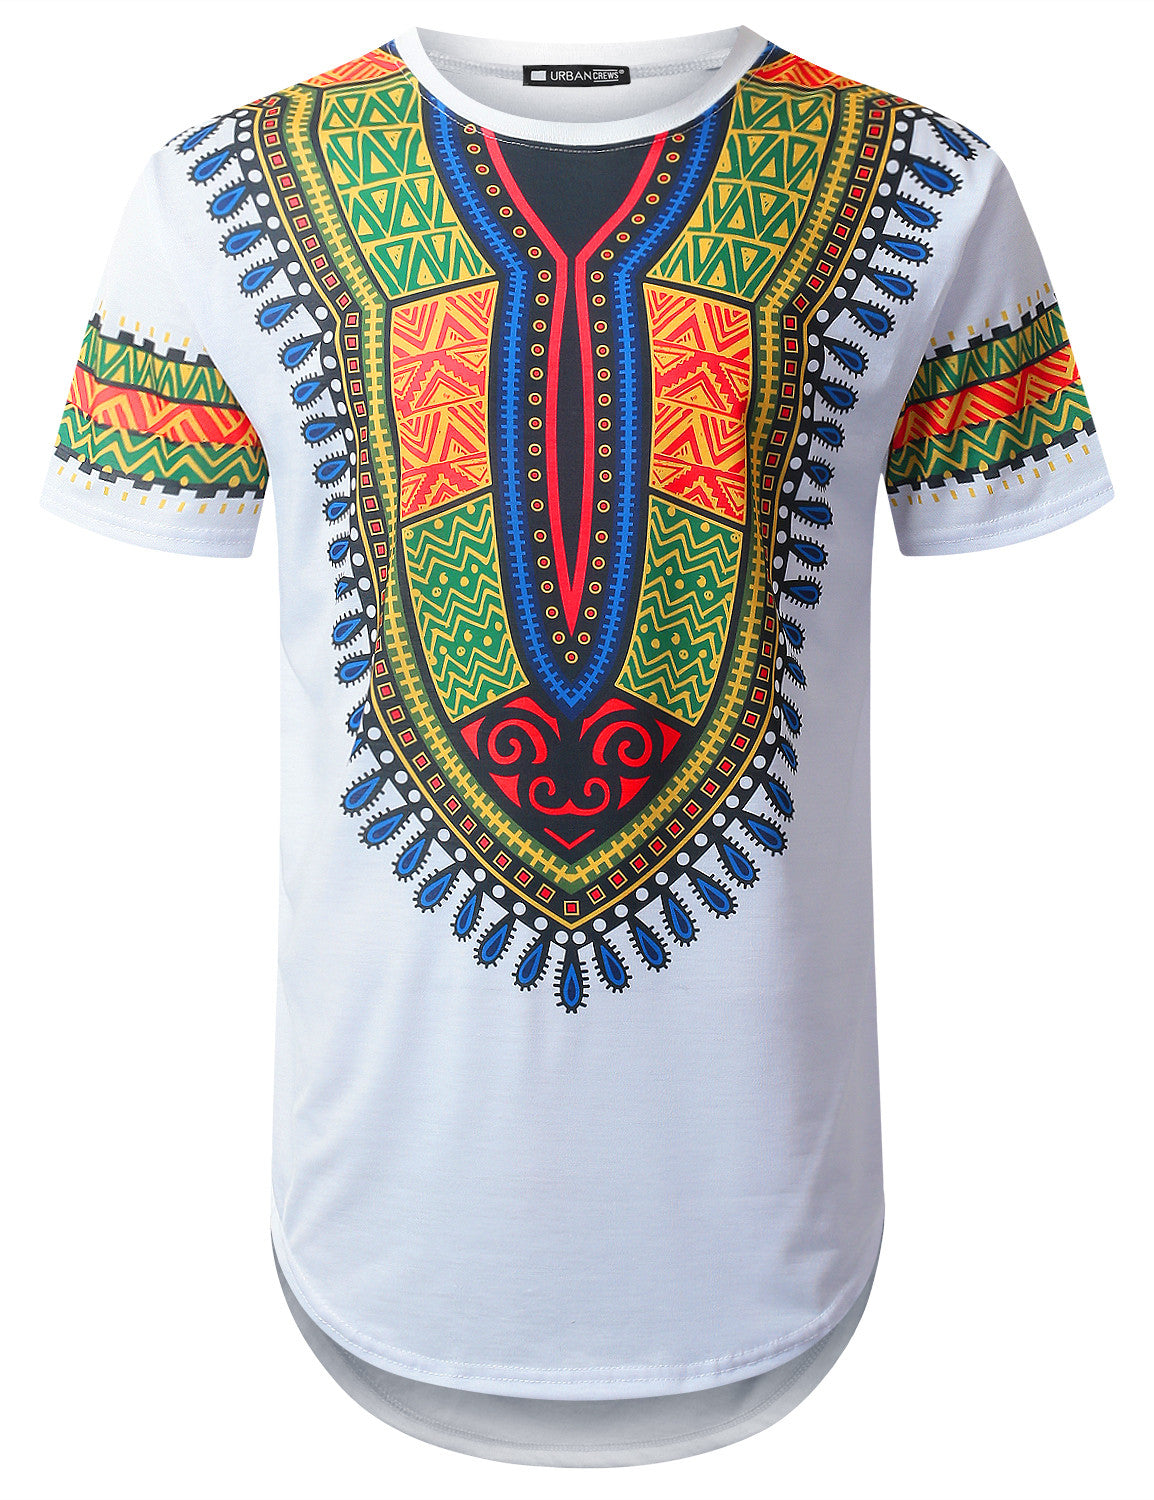 WHITE African Dashiki Longline T-shirt - URBANCREWS